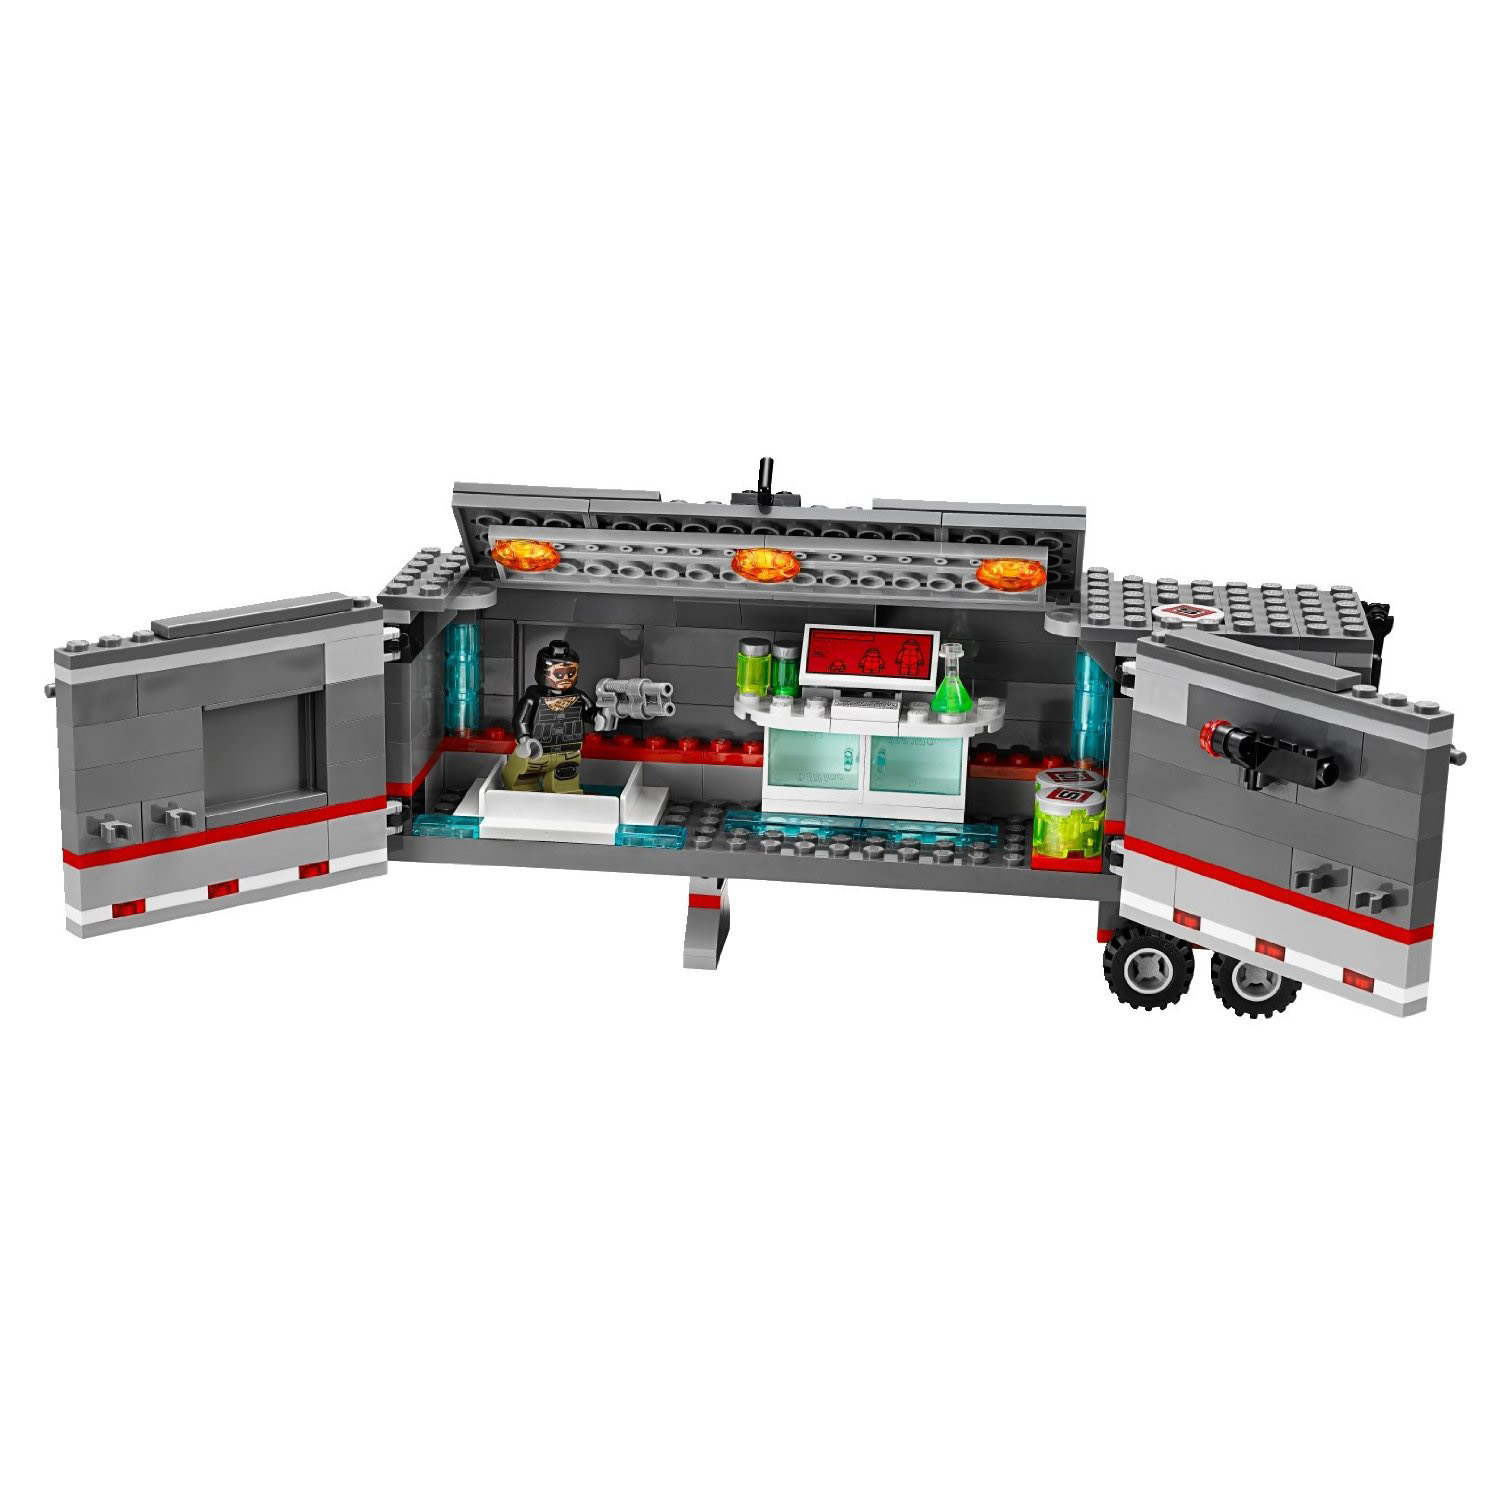 LEGO x Teenage Mutant Ninja Turtles Movie Set 17